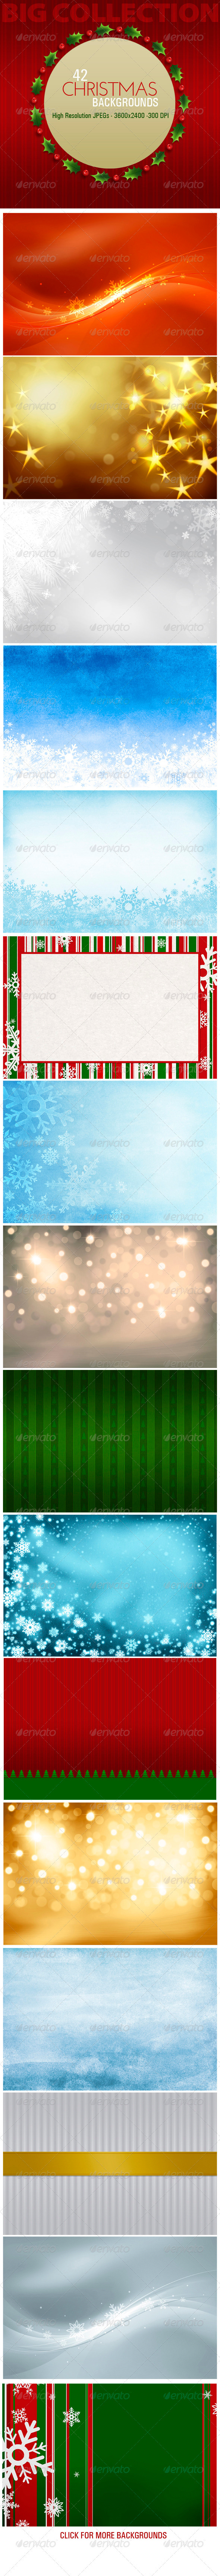 42 Christmas Backgrounds - Backgrounds Graphics